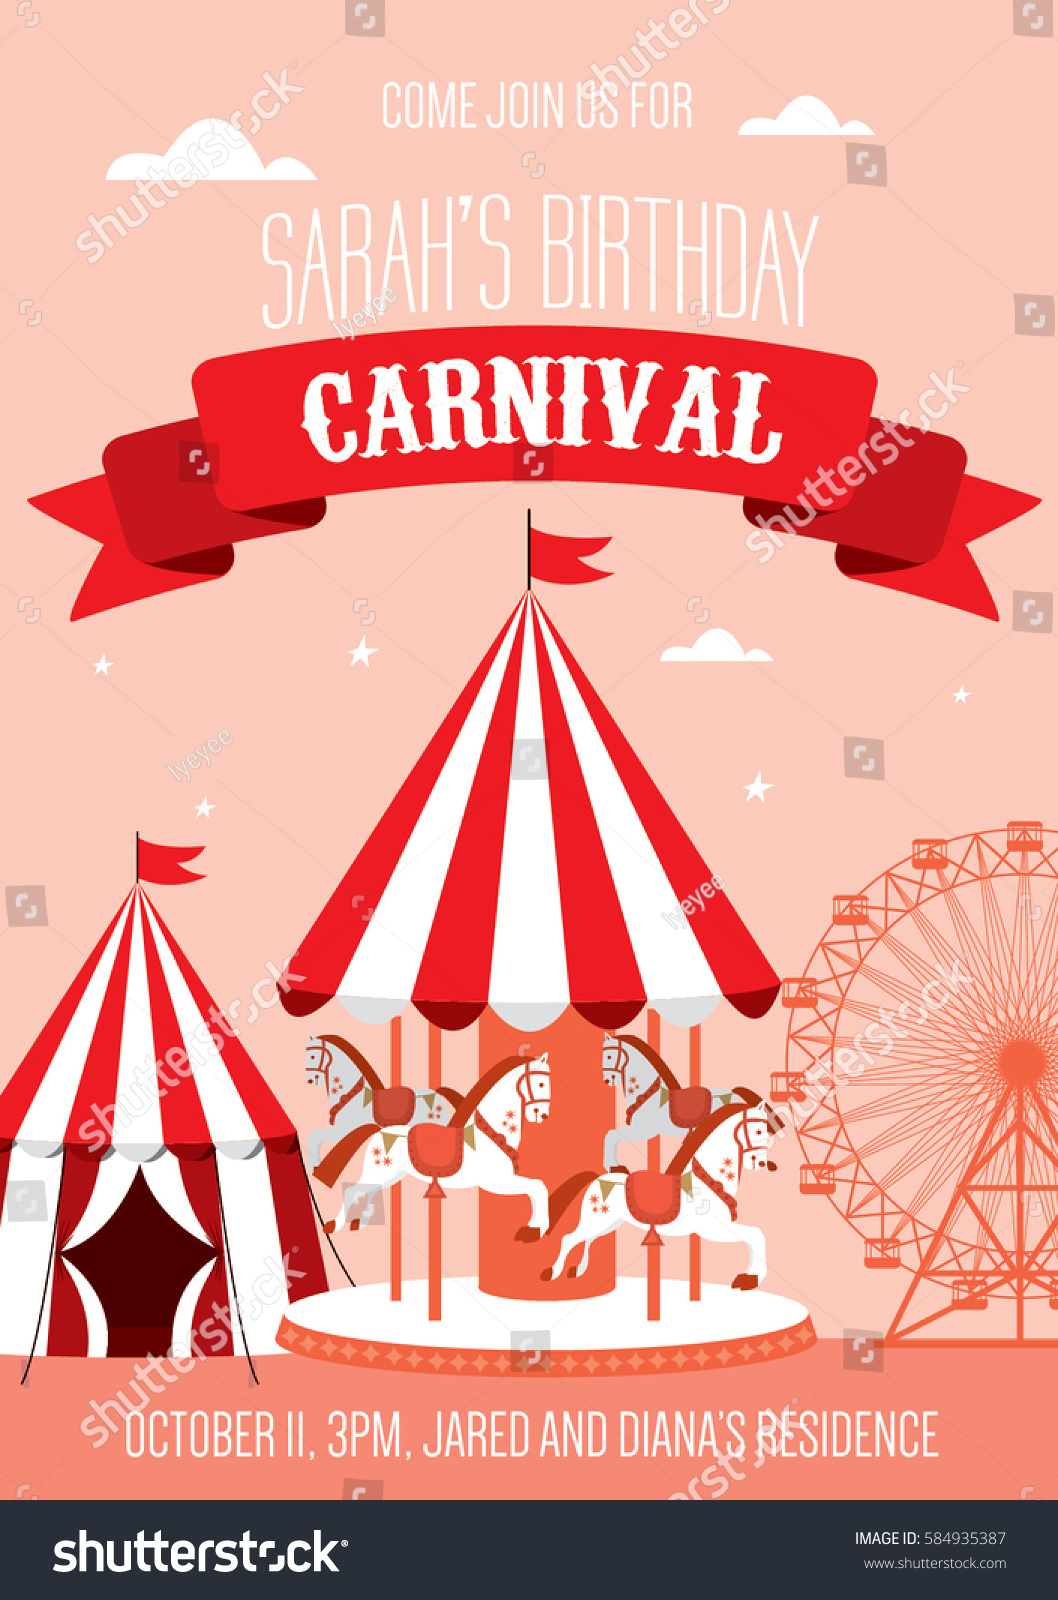 Fun Fair Carnival Birthday Invitation Template Vectorillustration